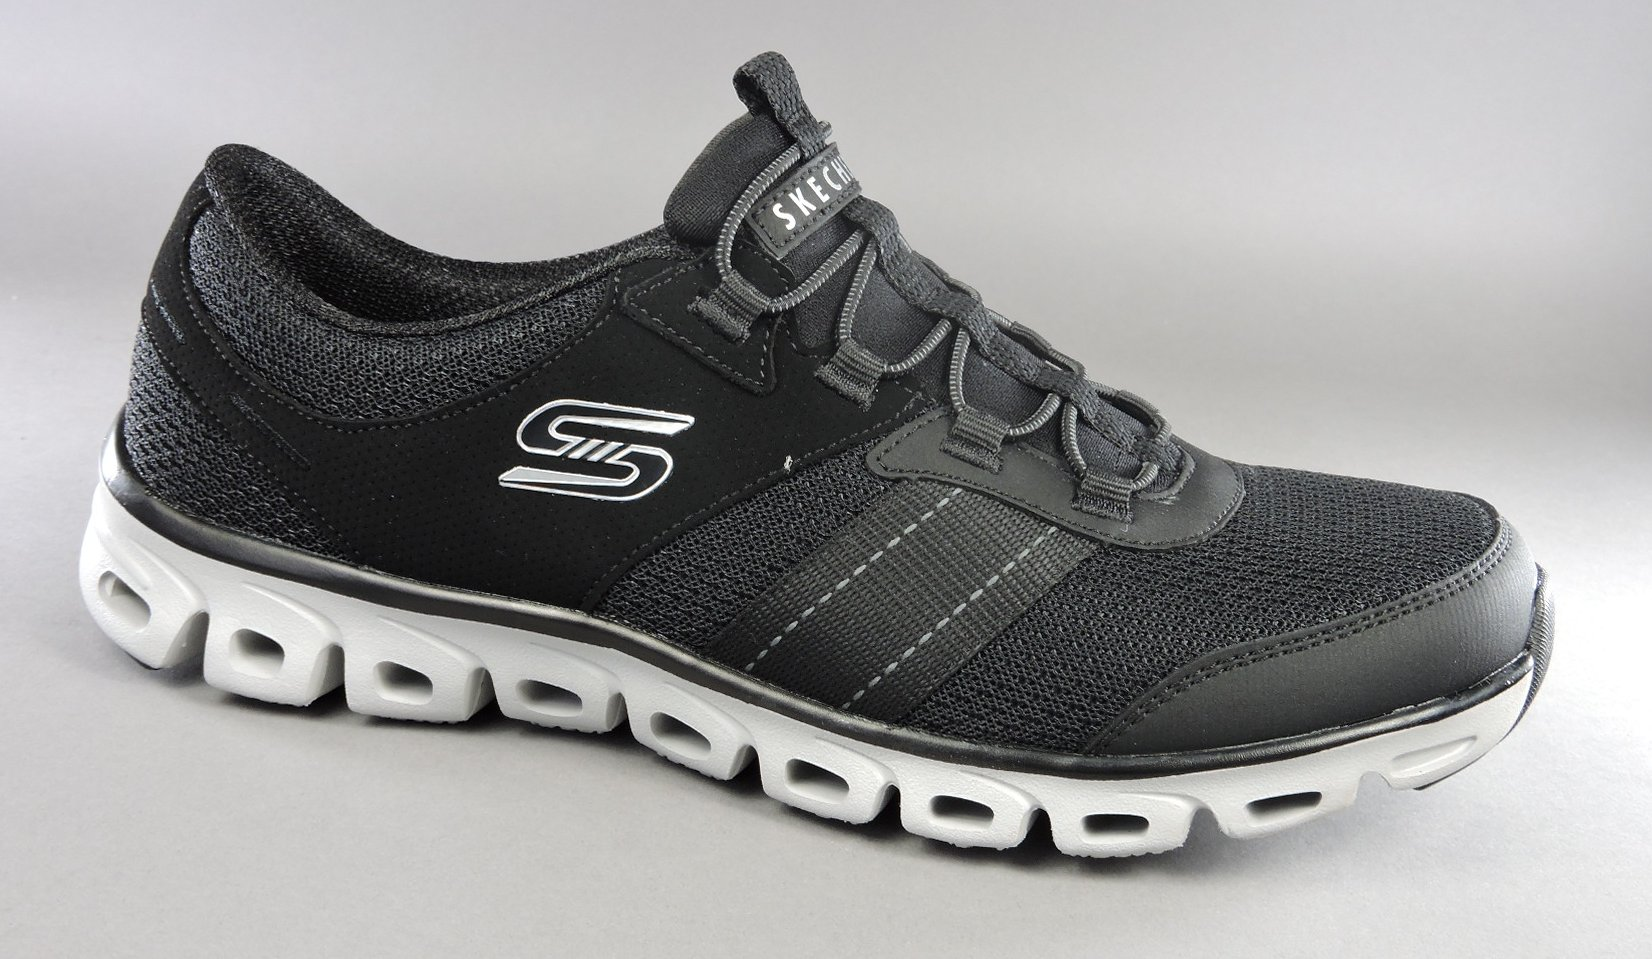 Skechers Glide Step